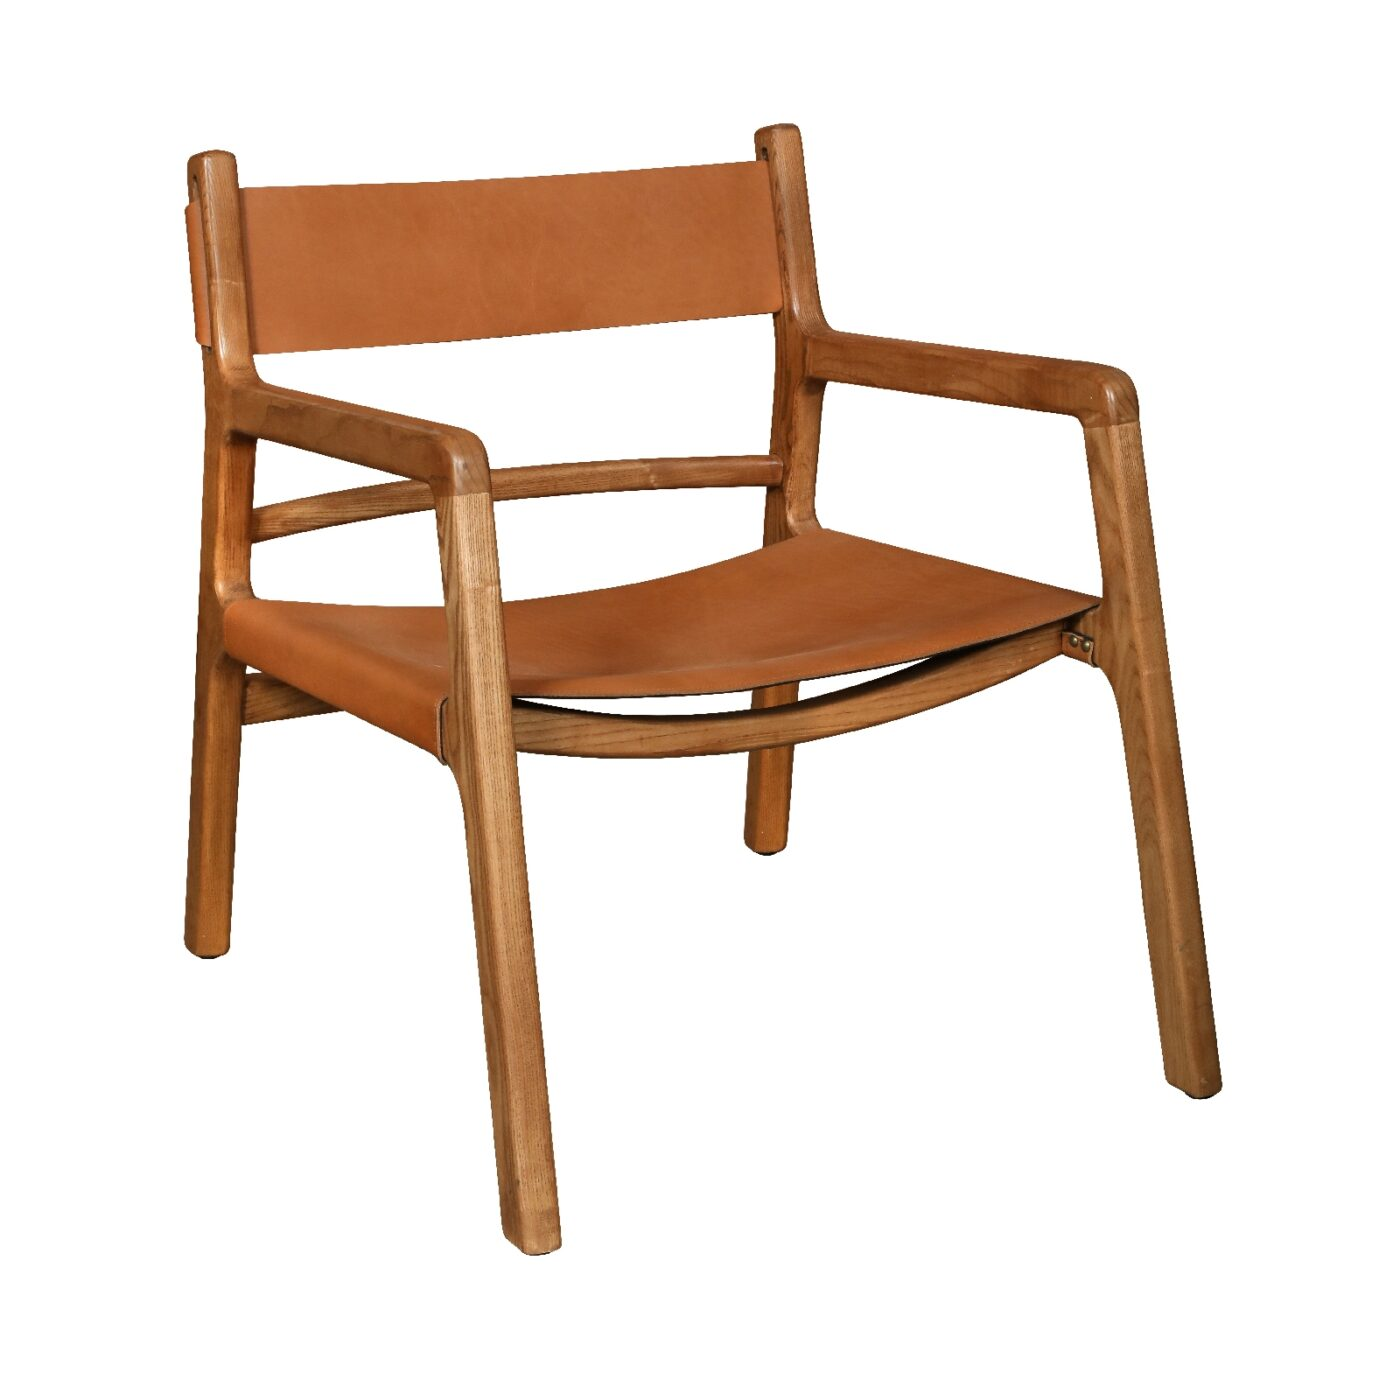 calne chair in saddle tan leather